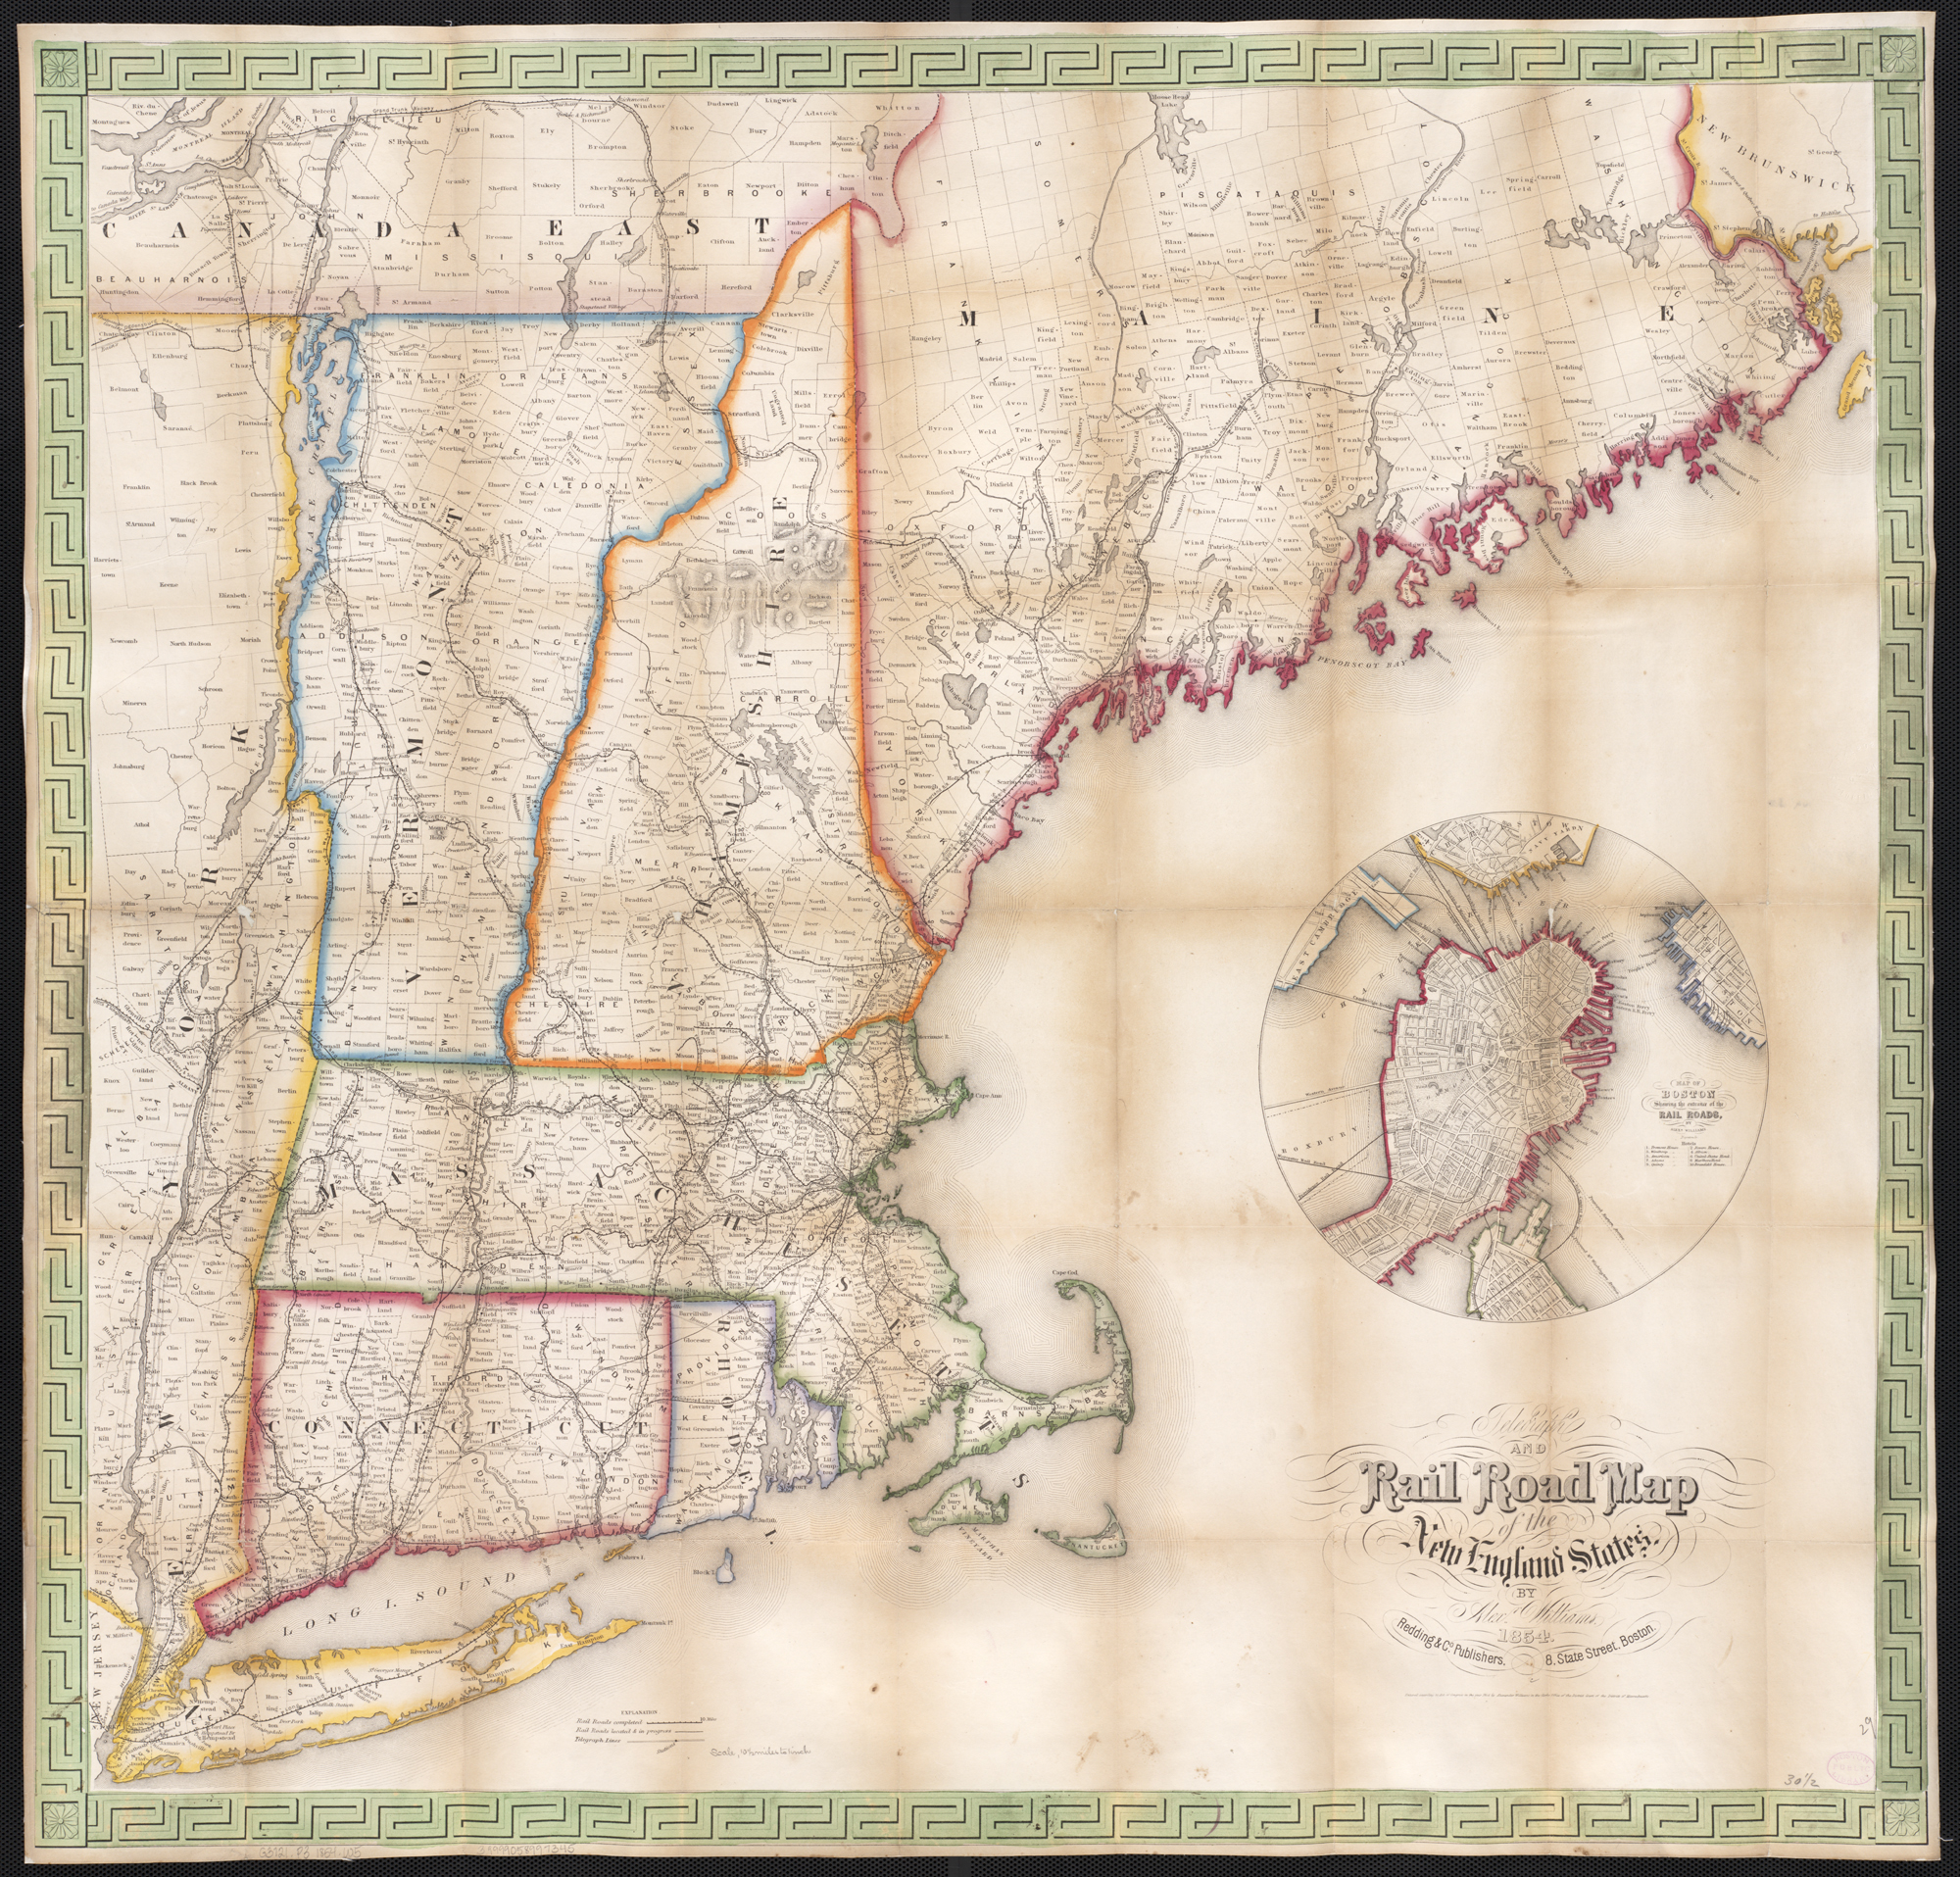 File Telegraph and rail road map of the New England states